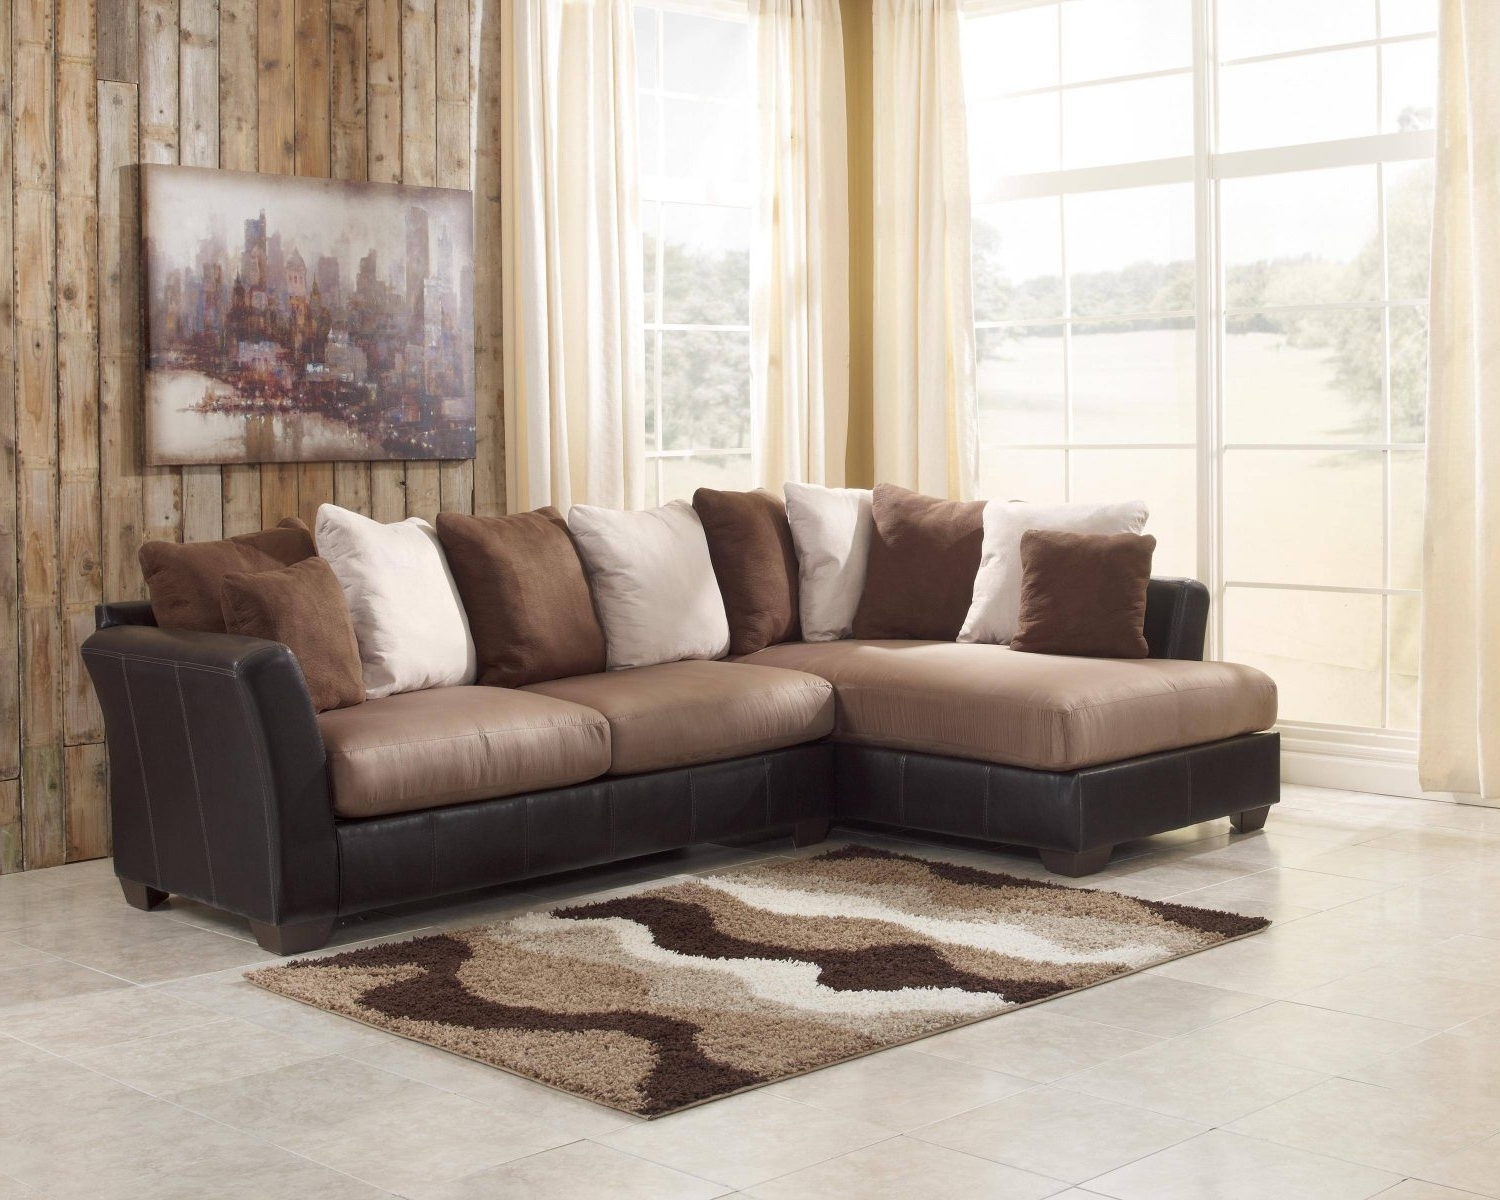 Widely Used Sectional Sofa With Chaises Furniture Nice Traditional Sofas With Regard To 2 Piece Sectionals With Chaise Lounge (View 14 of 15)